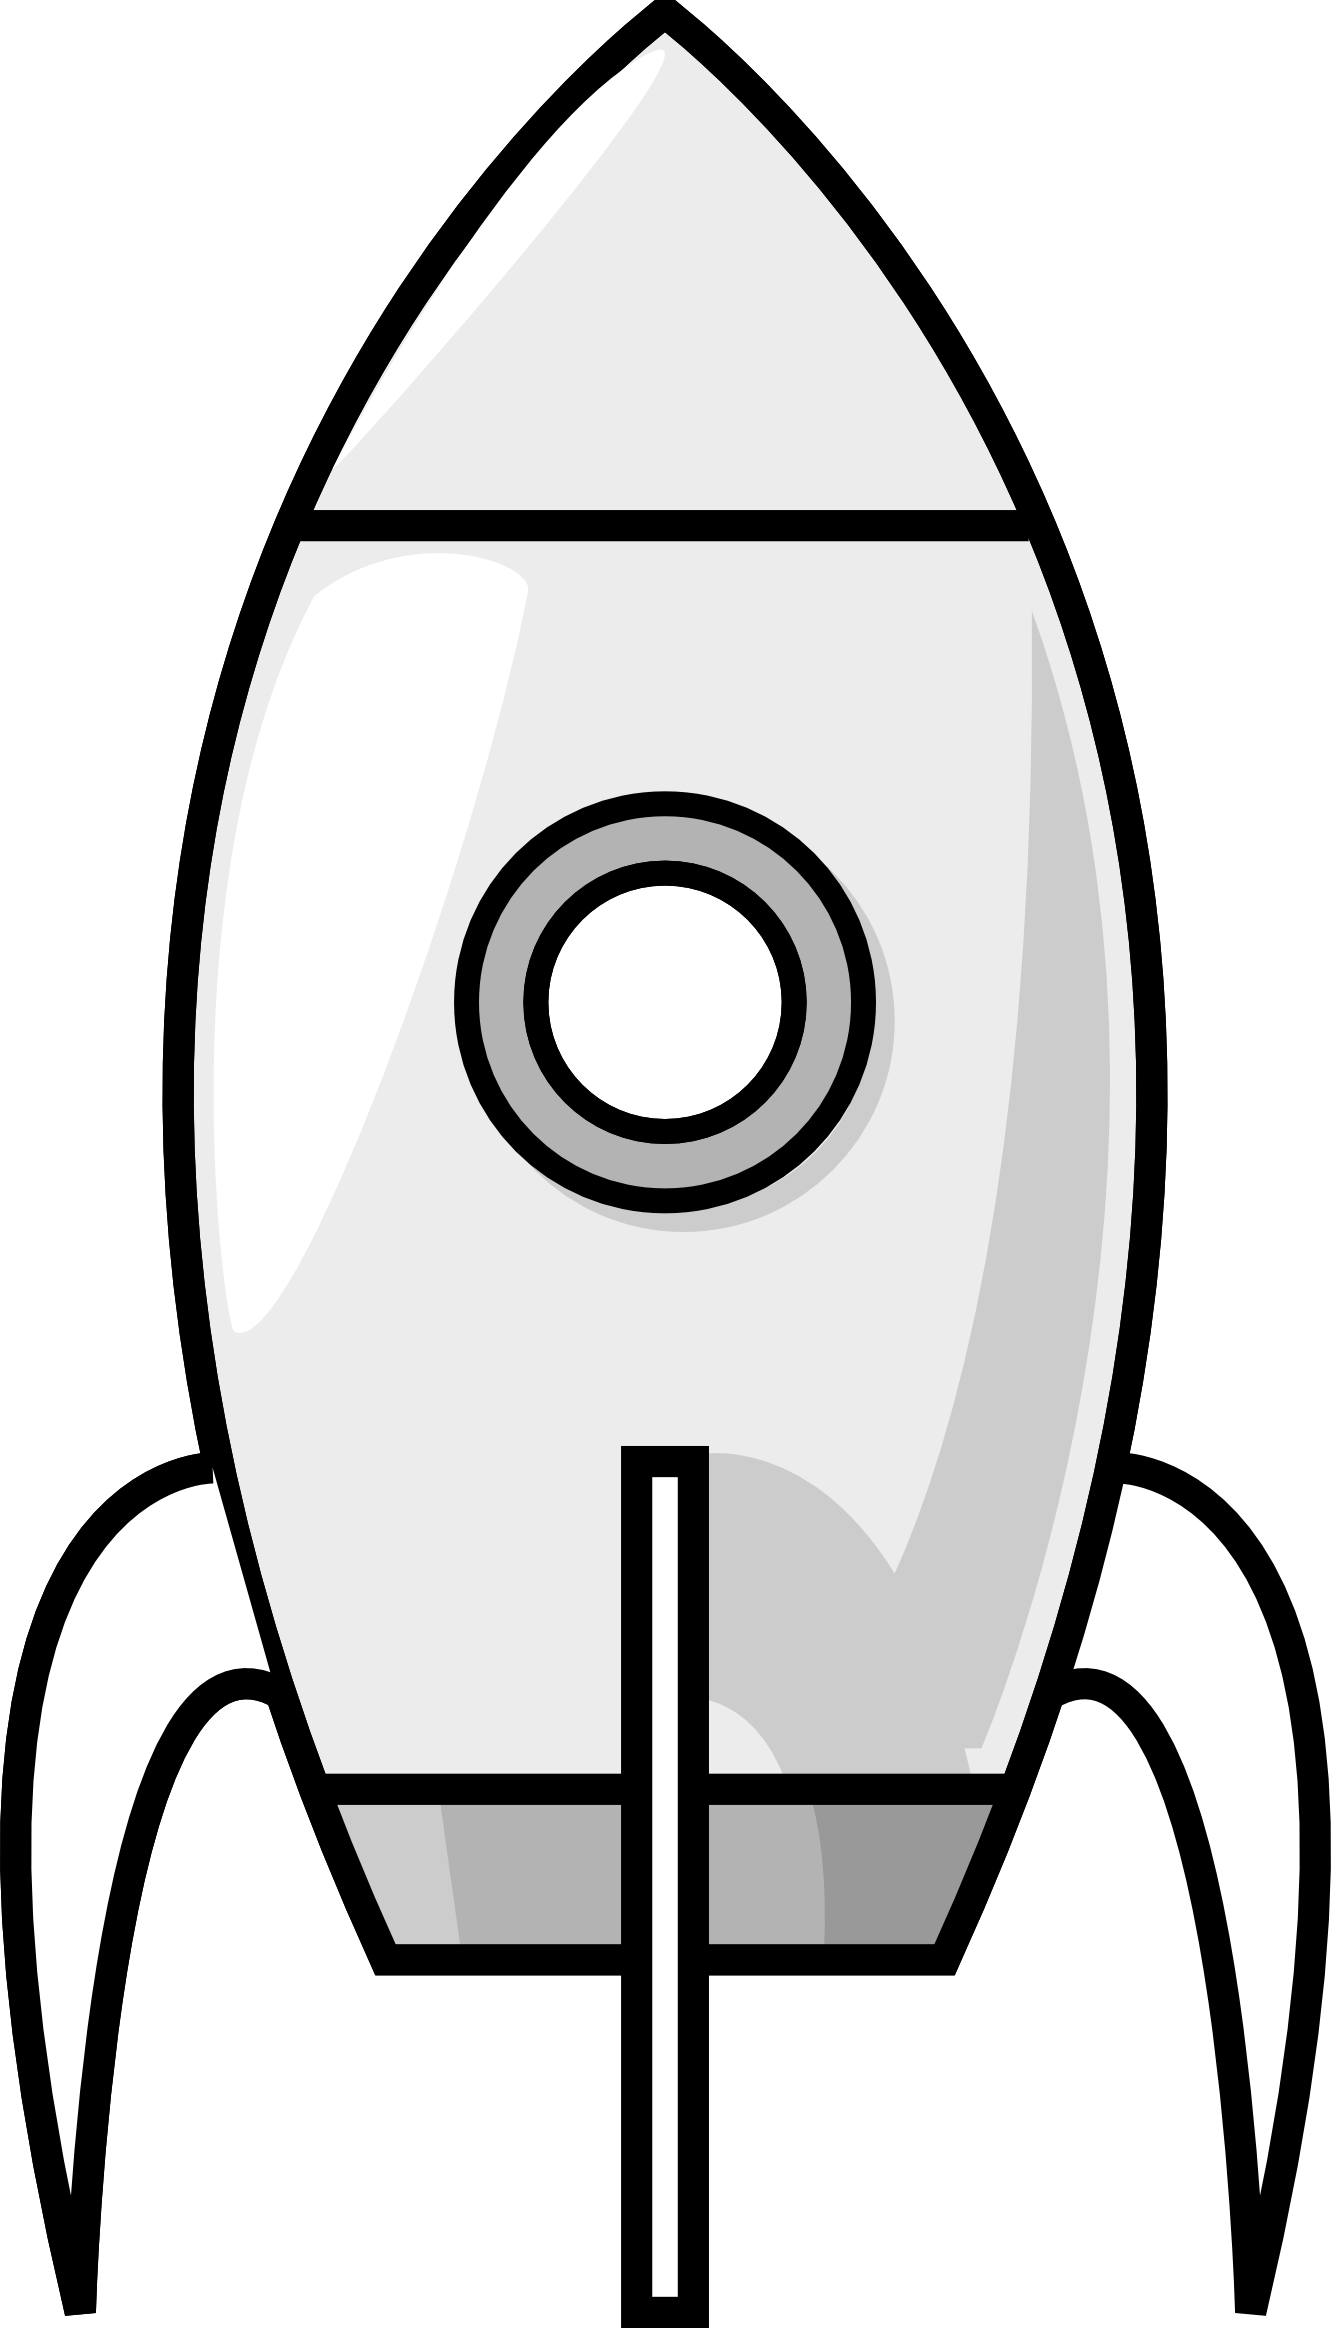 Coloring book clipart freeuse download Use with the straw rocket. Pin Cartoon Rocket Coloring Book ... freeuse download